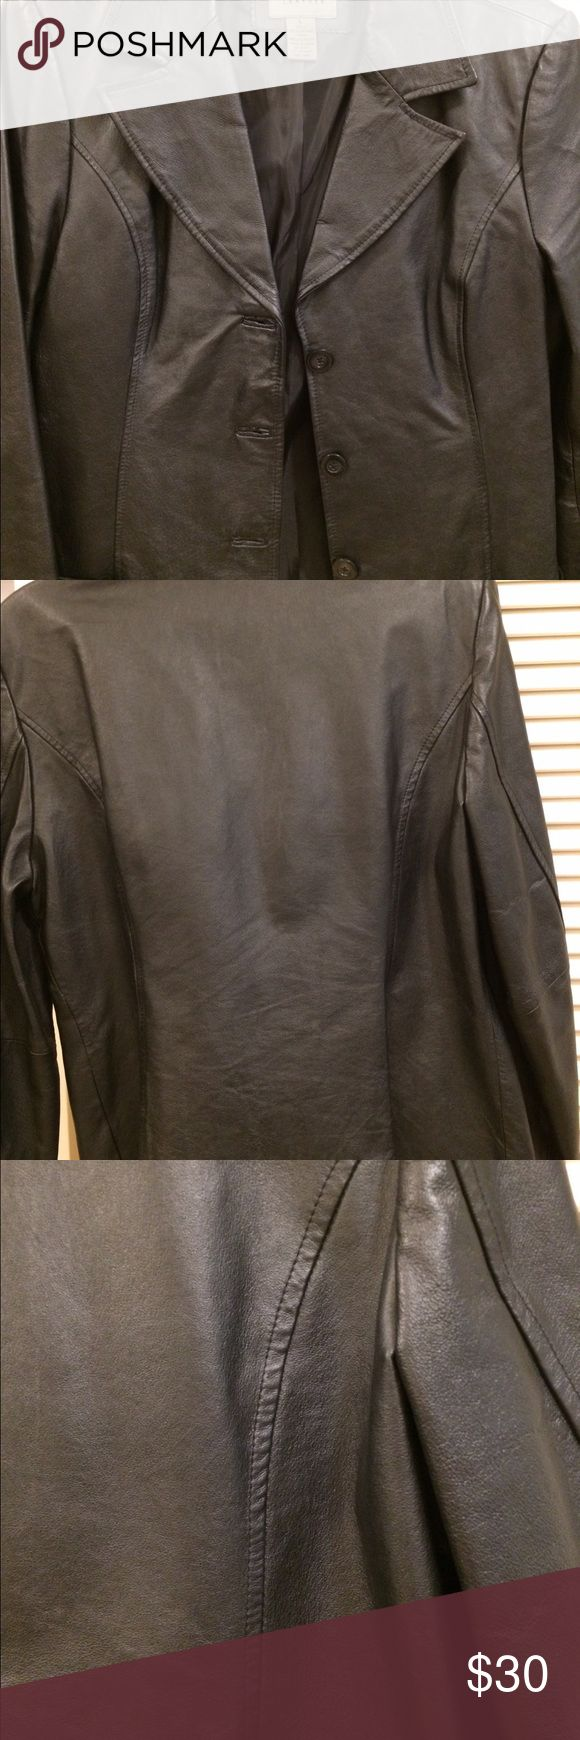 Ladies Leather  jacket Uniform by John Paul Richard black fully lined leather jacket. Ladies 3 front button jacket - perfect condition - worn one time. Front patch pockets. 100% leather w/ Polyester lining. Uniform by John Paul Richard Jackets & Coats